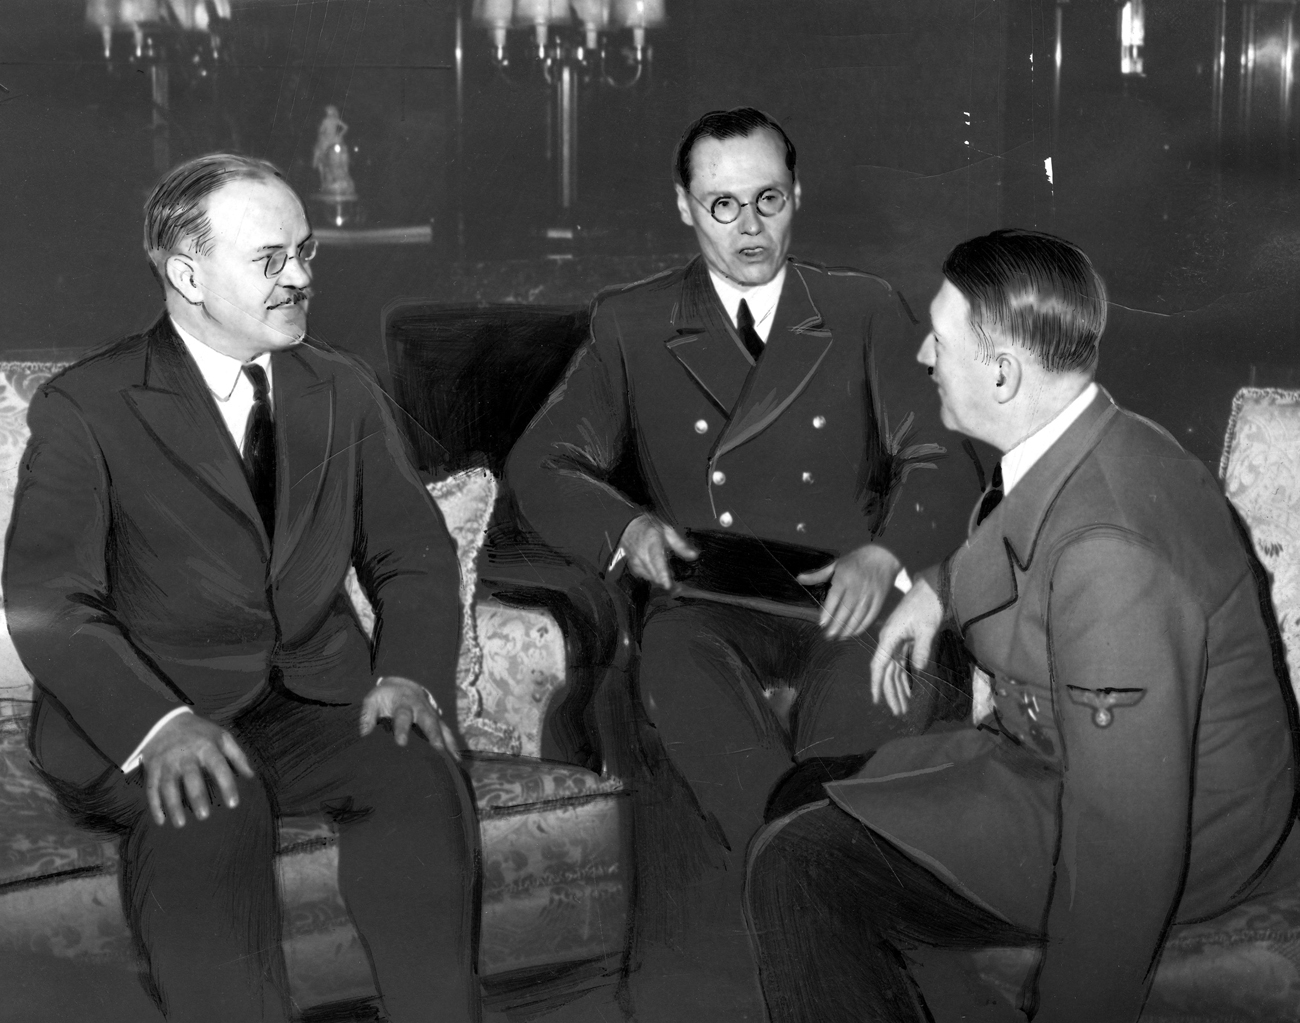 Adolf Hitler and Soviet Foreign Minister Vyacheslav Molotov meeting in Berlin